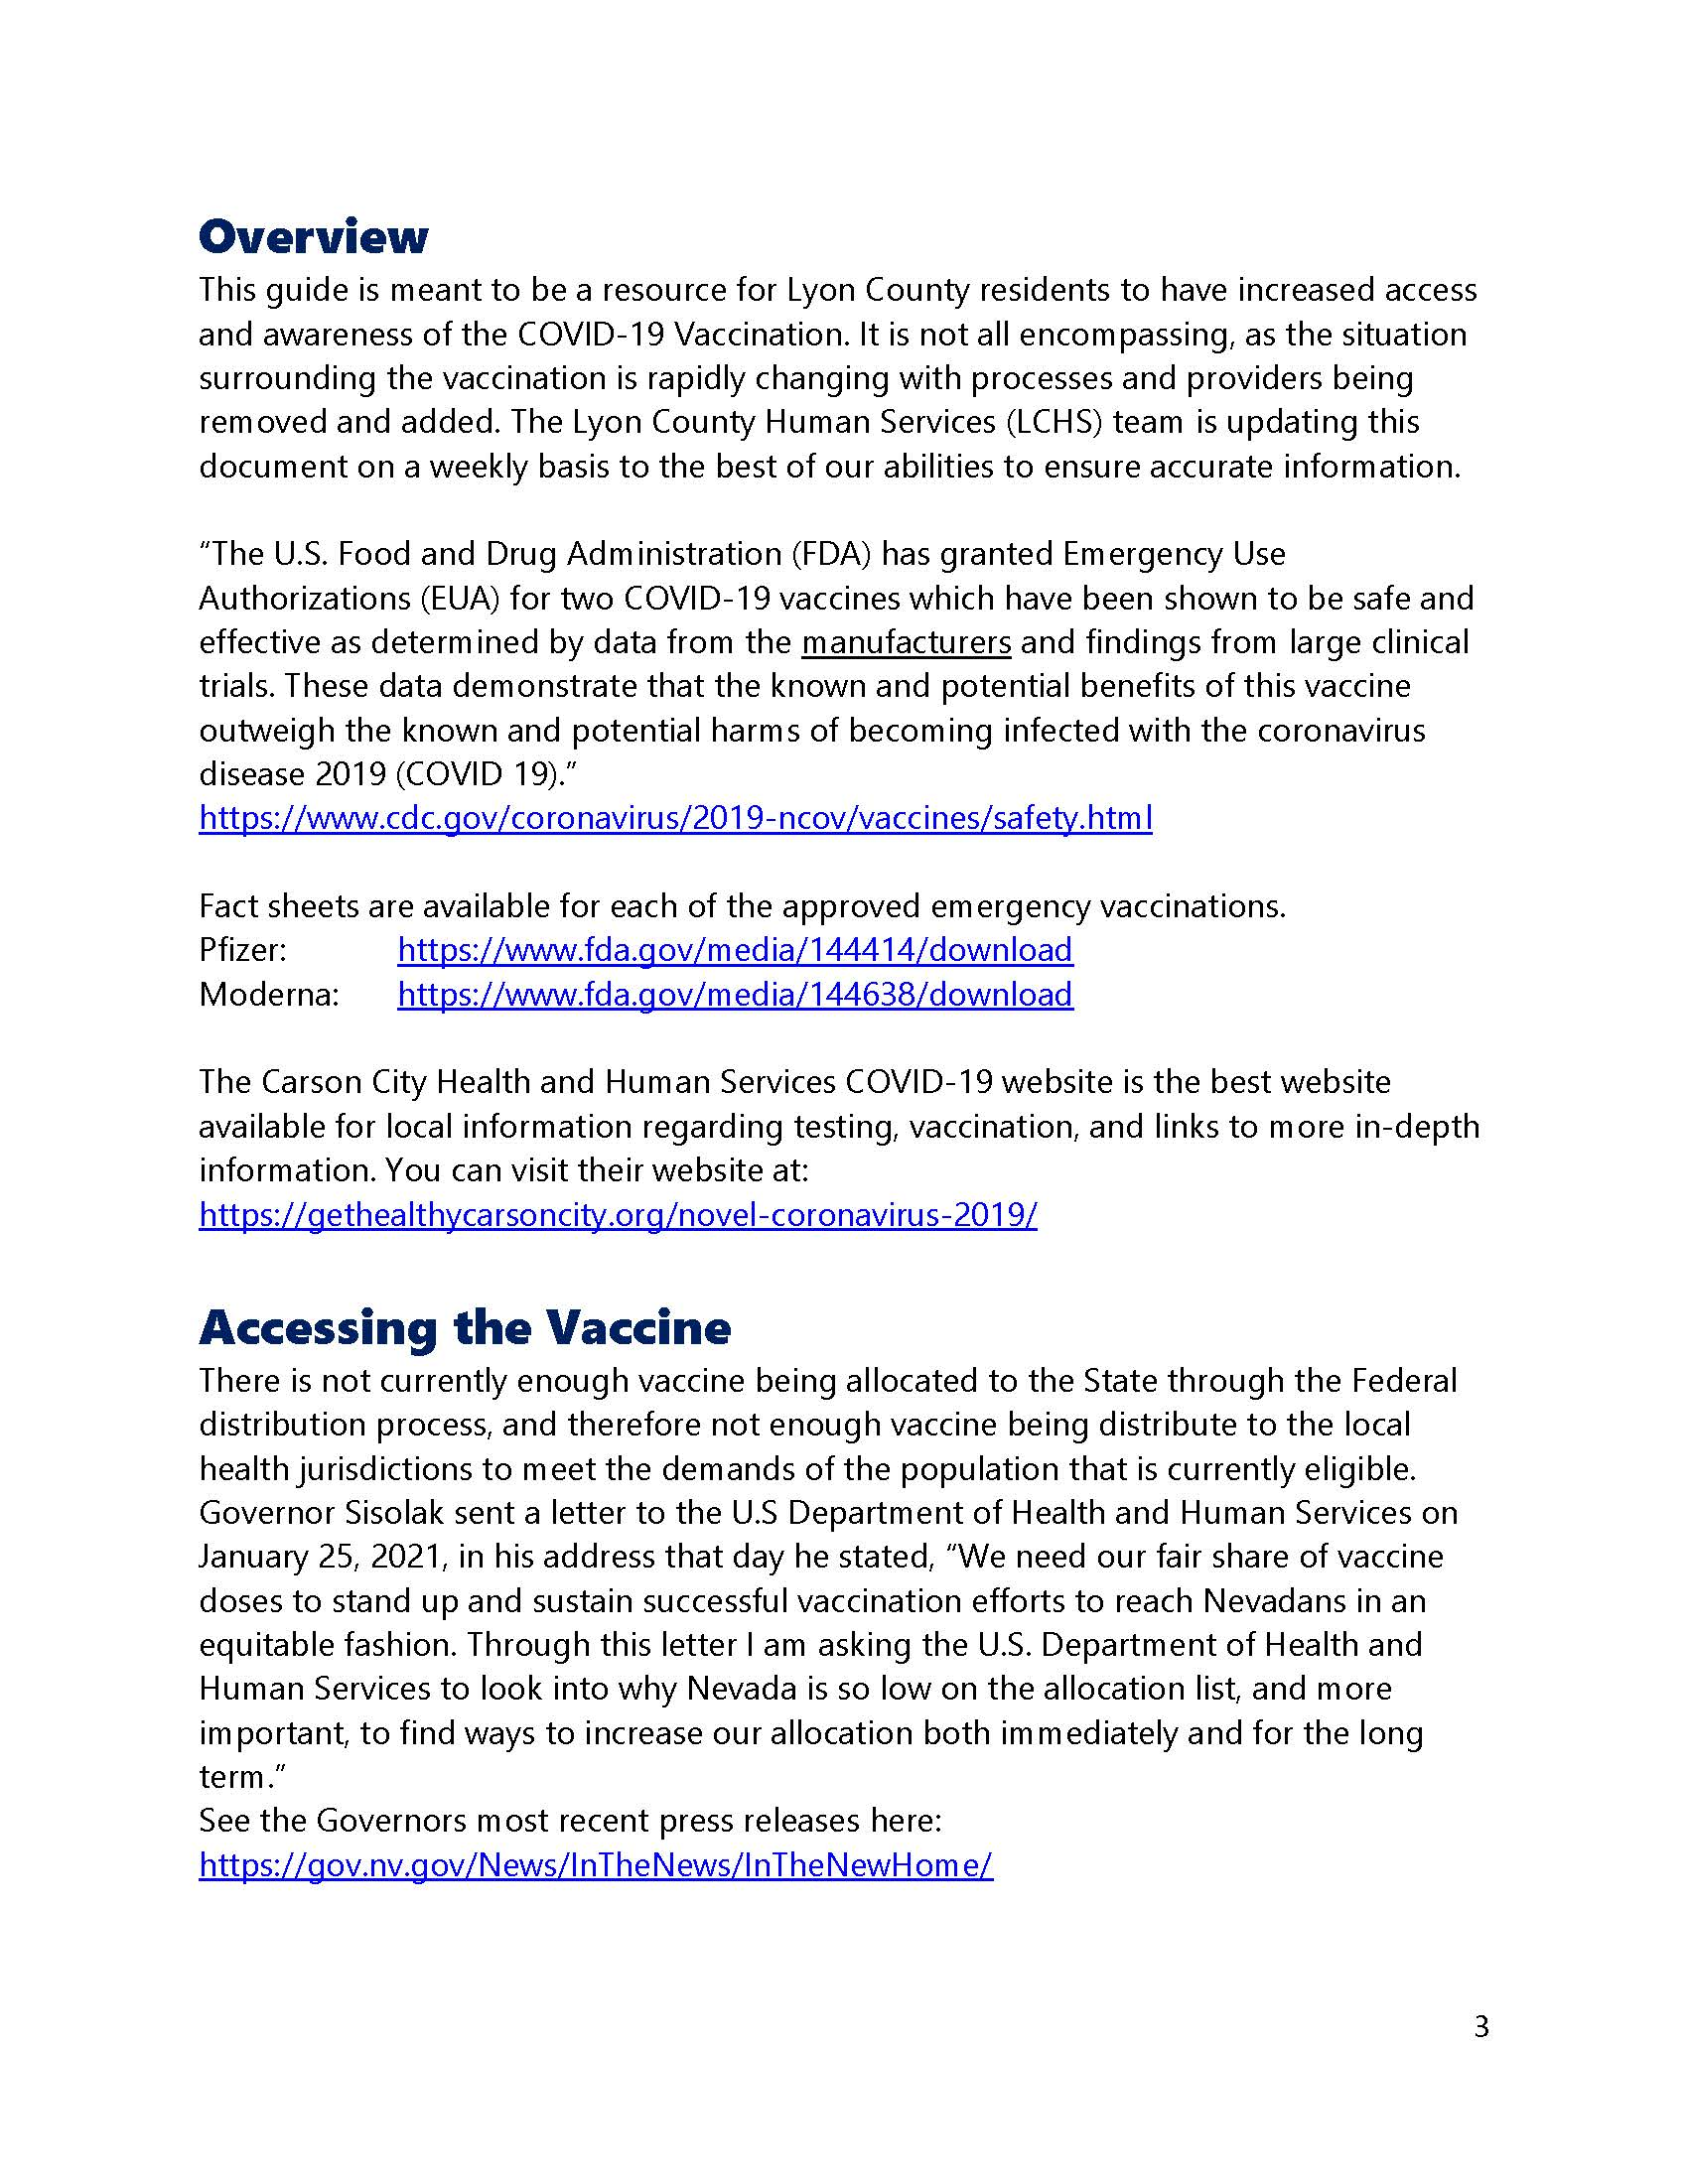 LCHS Vaccination Resource Guide (003)_Page_3